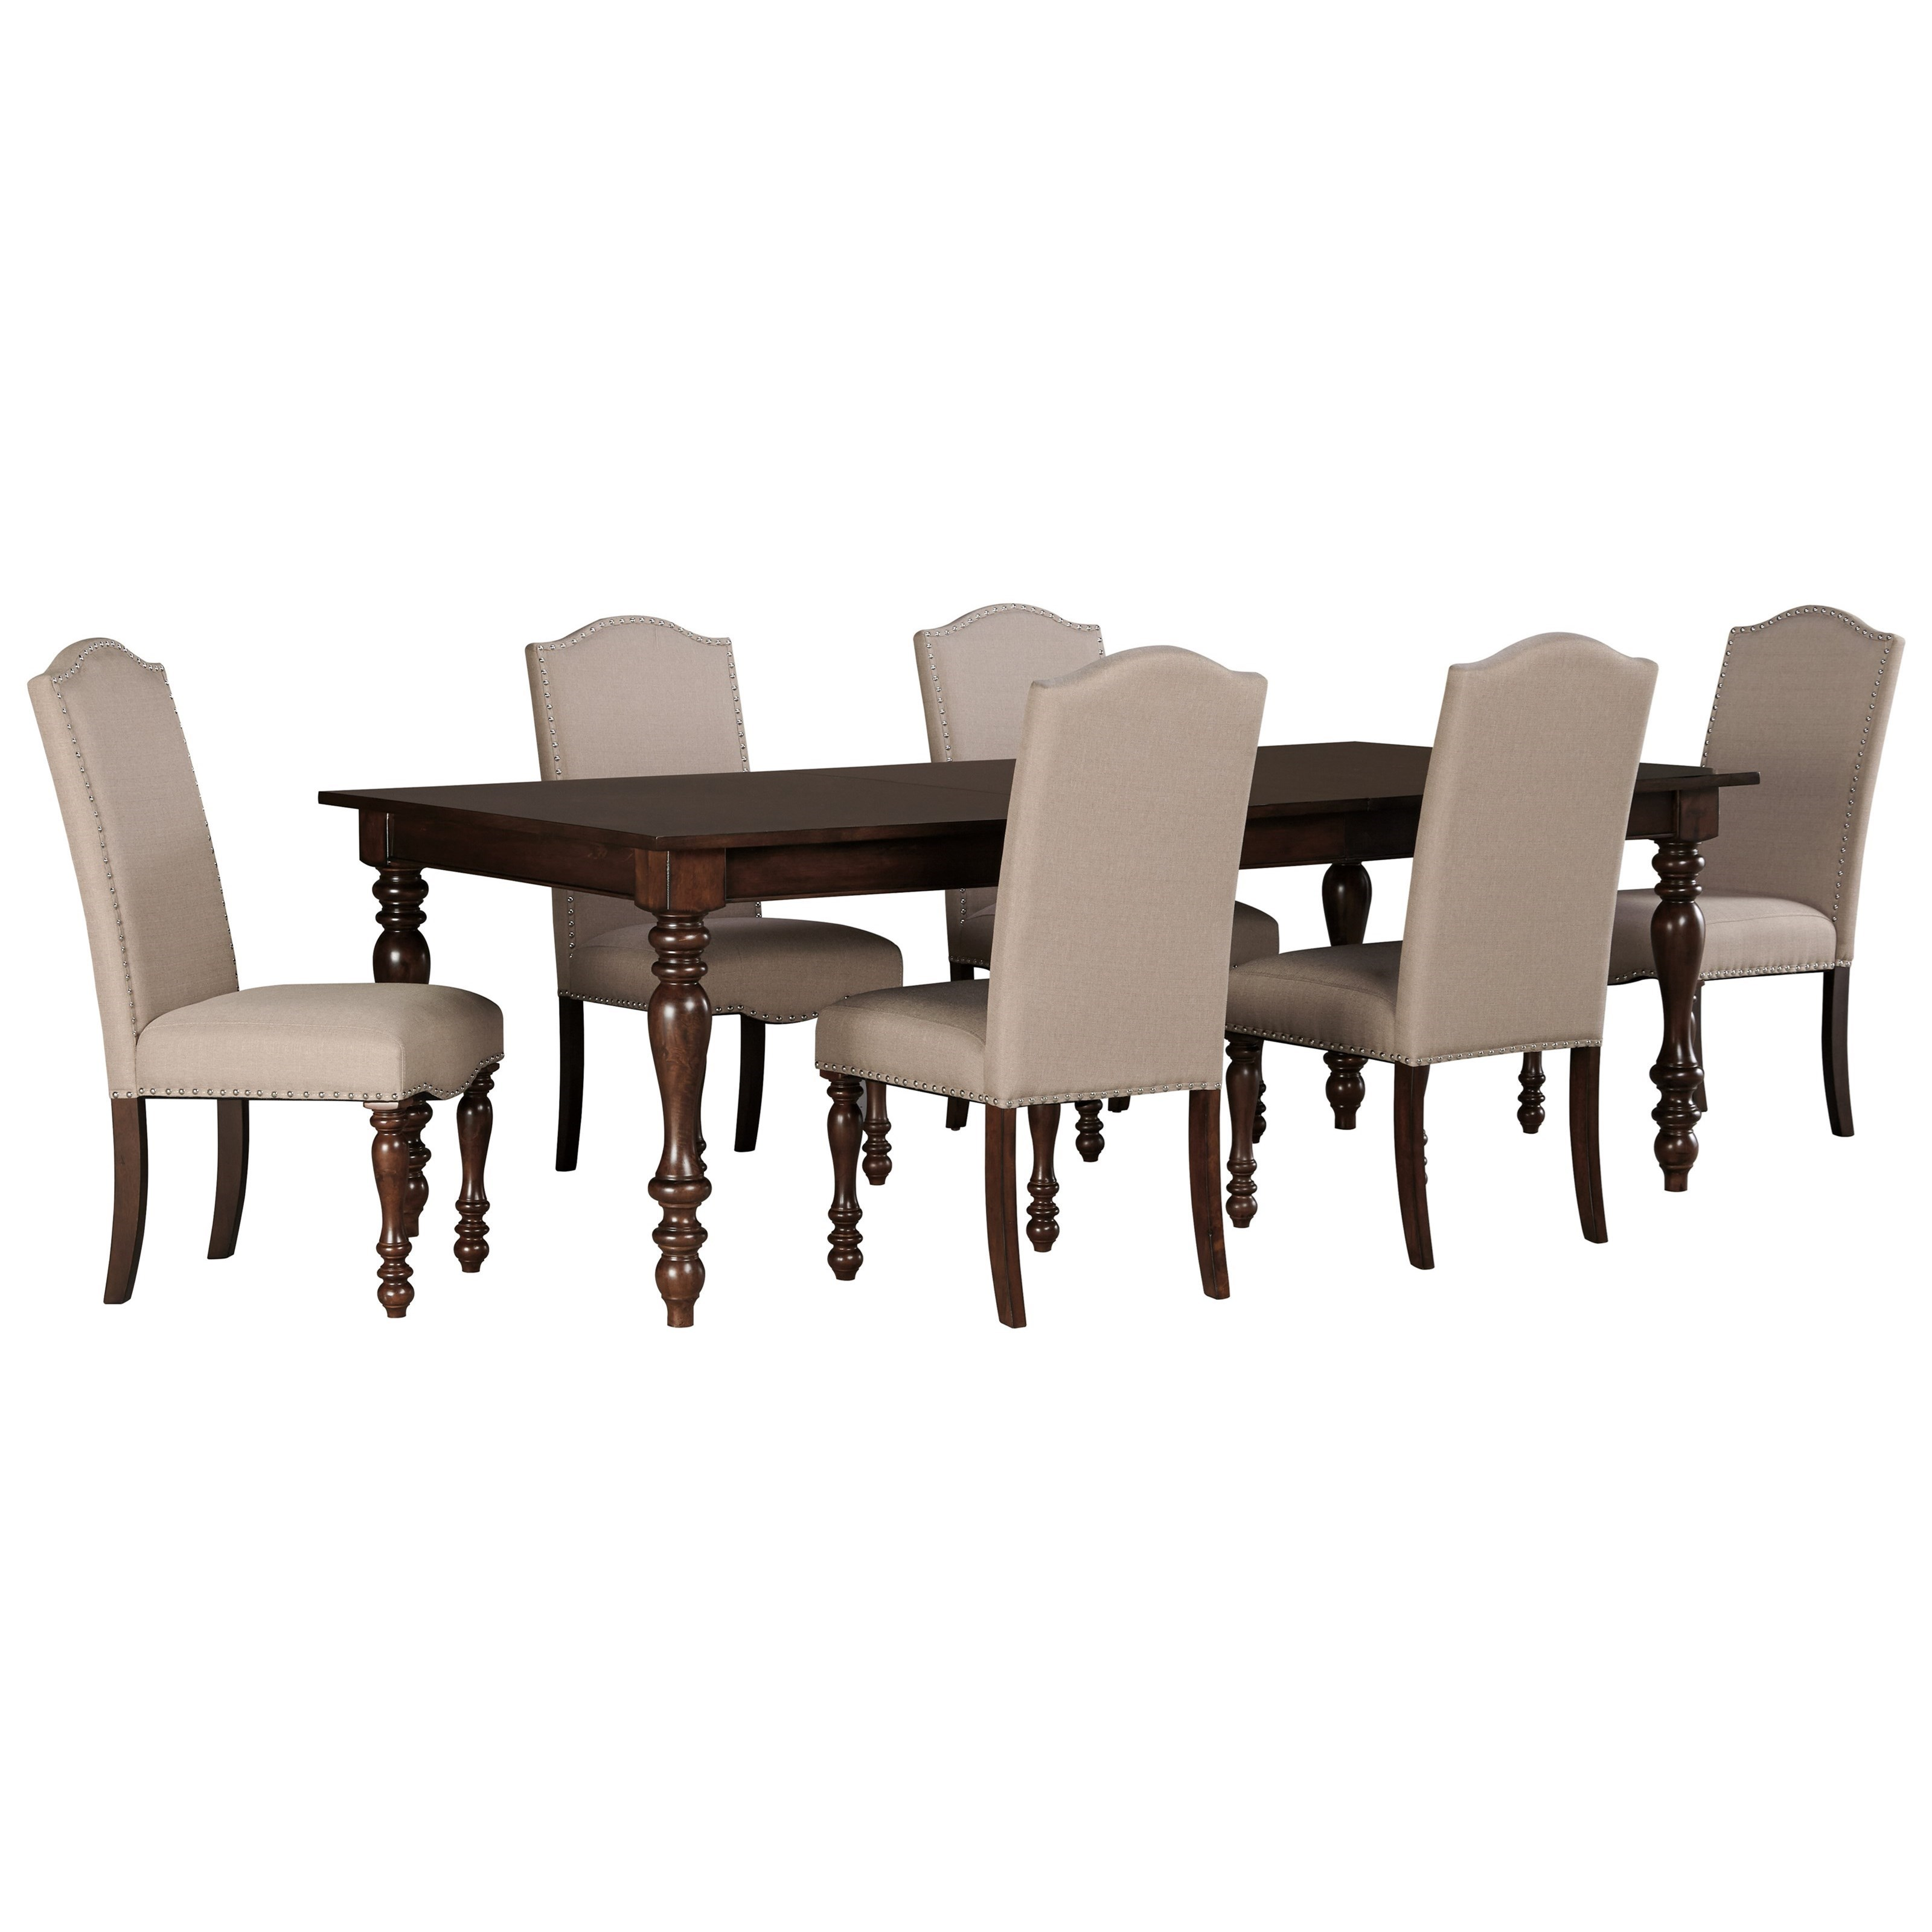 Signature Design By Ashley Baxenburg 7 Piece Dining Room Extension Table Set